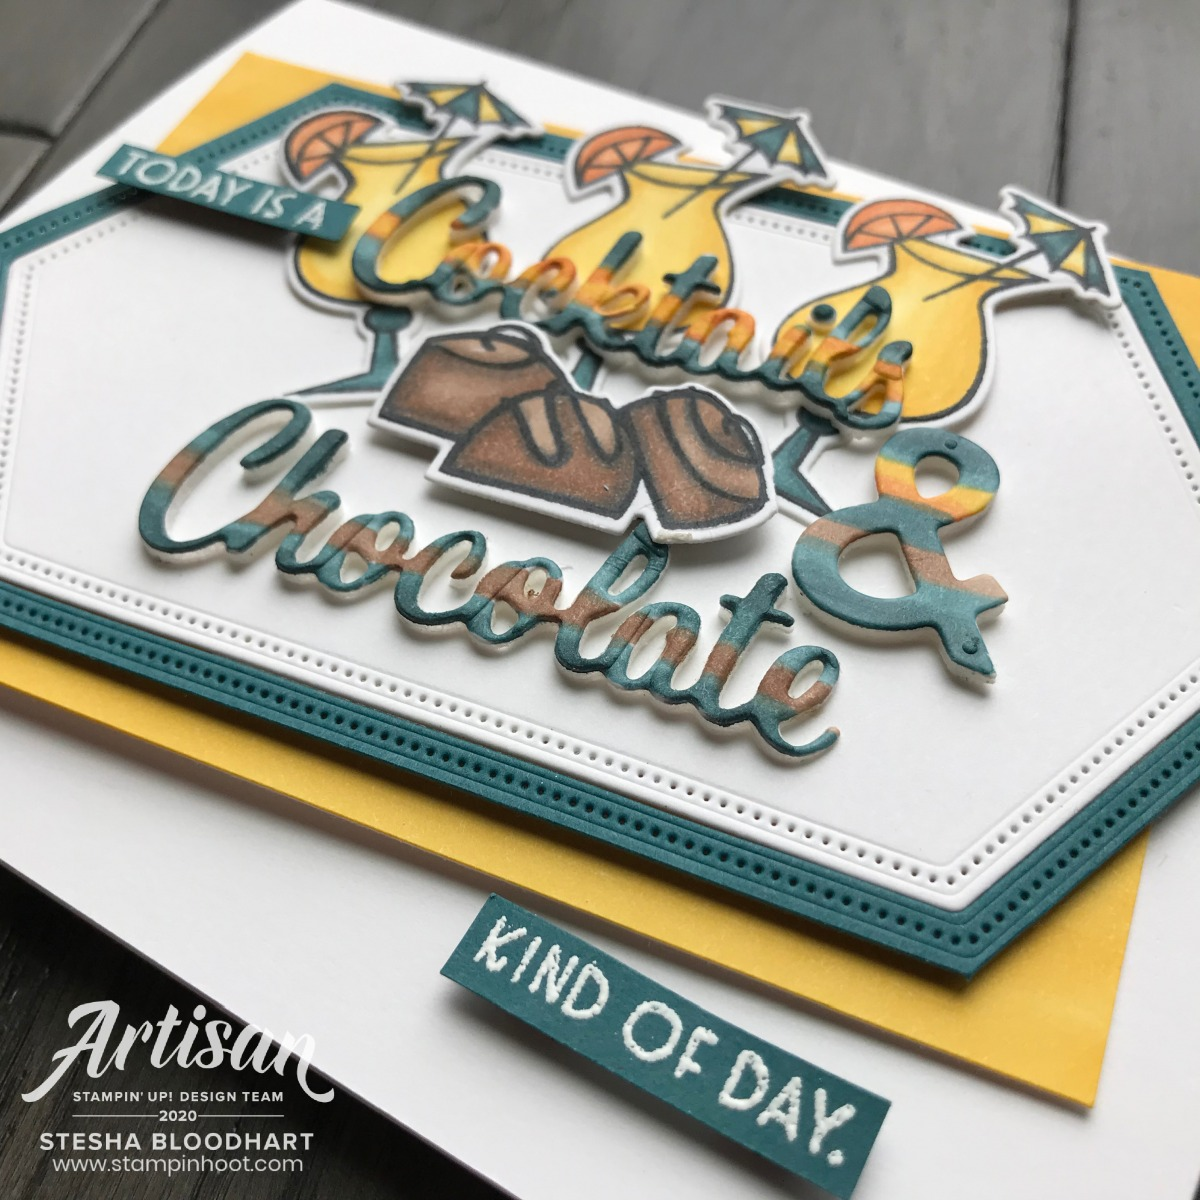 Nothing's Better Than Bundle From Stampin' Up! Cocktails and Chocolate Card created by Stesha Bloodhart, Stampin' Hoot! 2020 Artisan Design Team Blog Hop